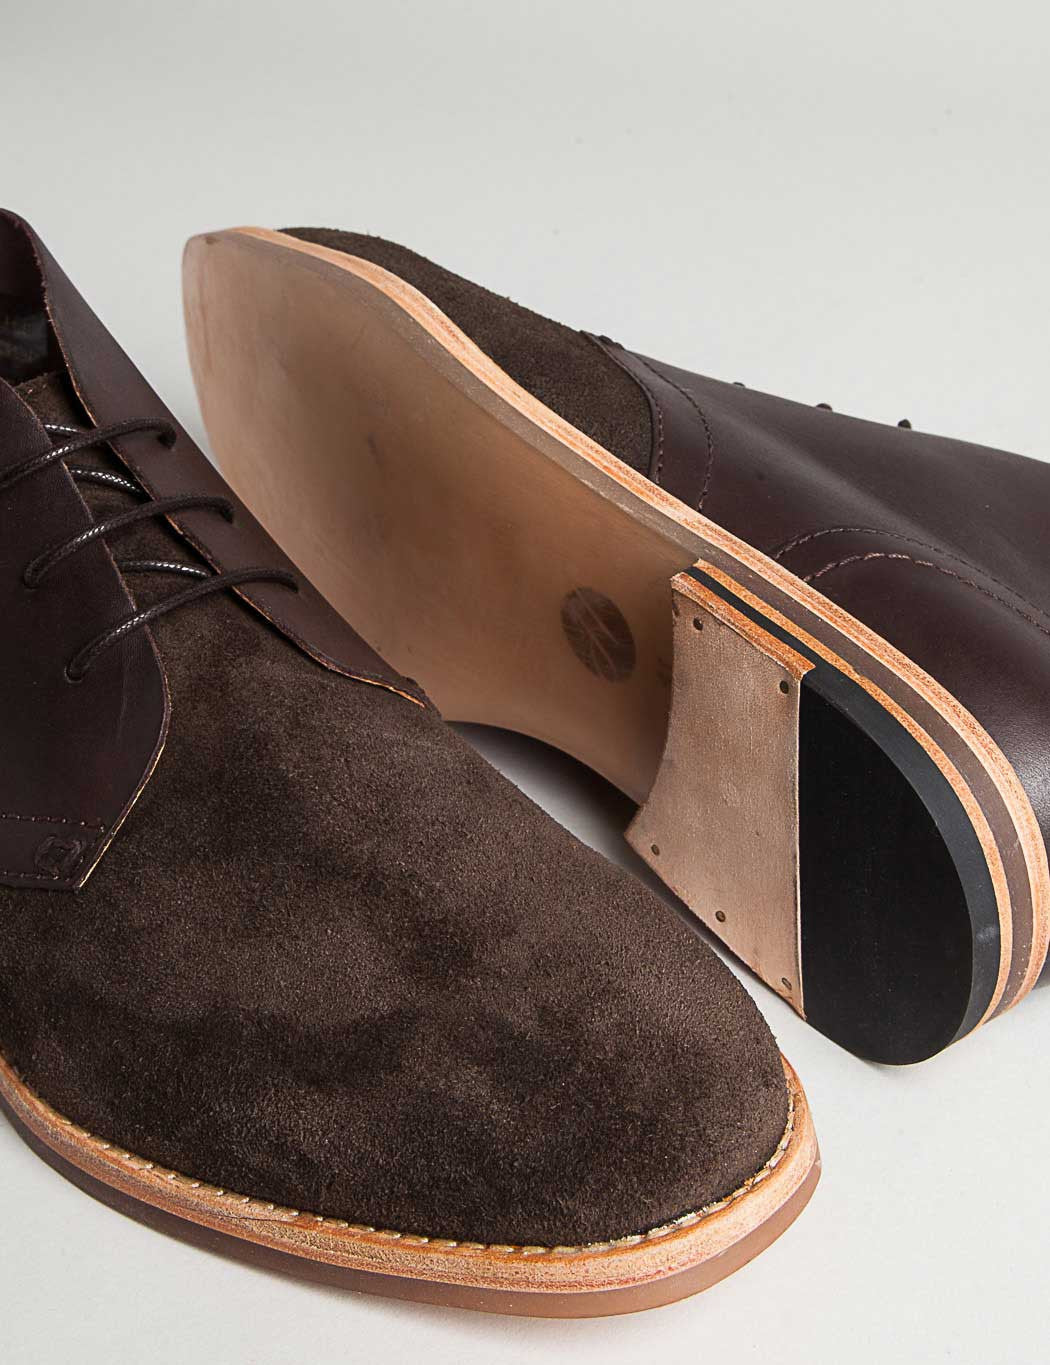 Hudson Houghton Suede Chukka Boot - Brown